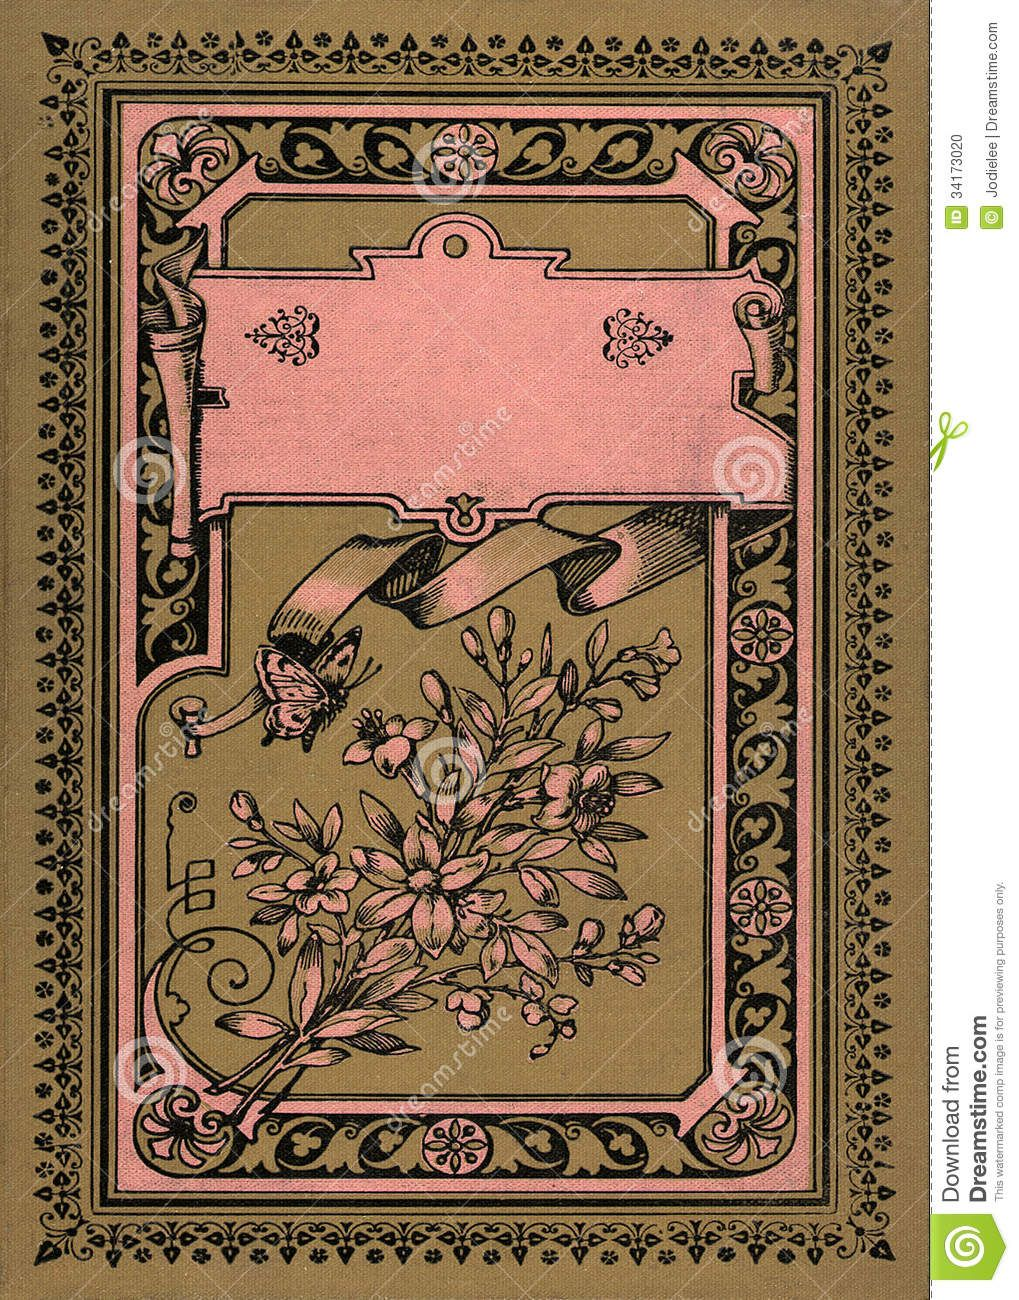 Vintage Book Cover Design Template Free : Antique book covers old brown decorative floral